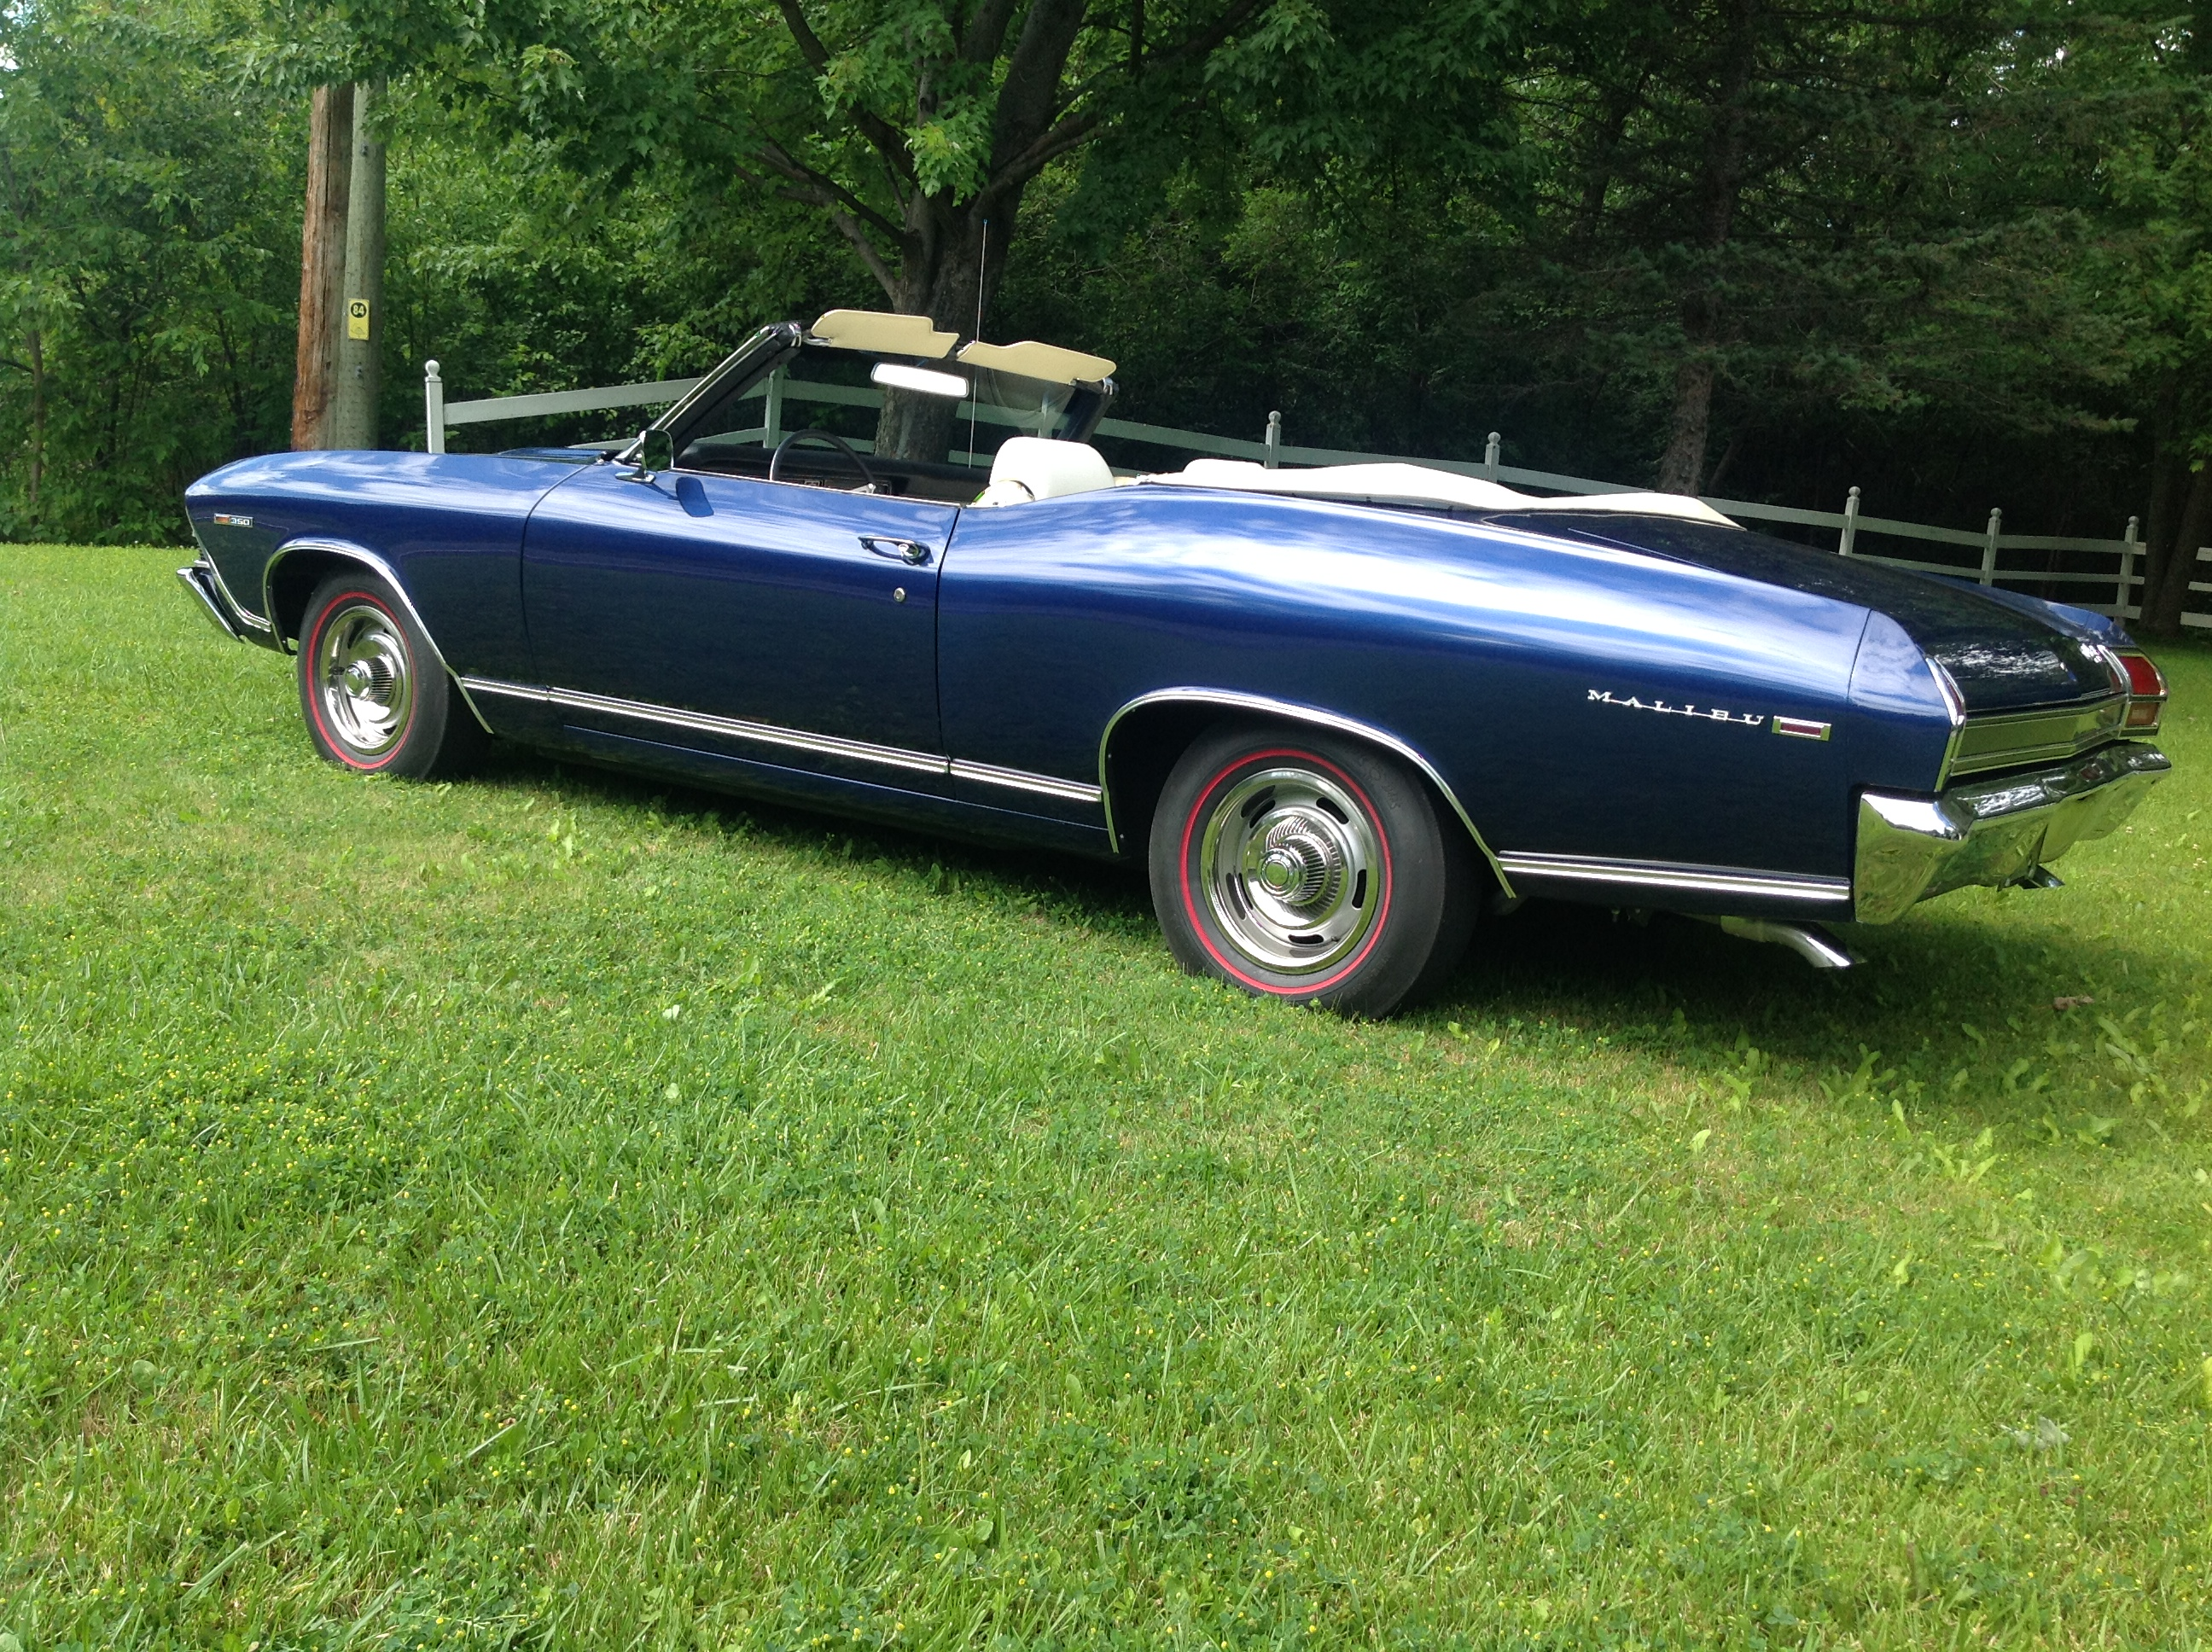 1969 – CHEVELLE MALIBU 350 CONVERTIBLE – SOLD | NOS and RESTORED